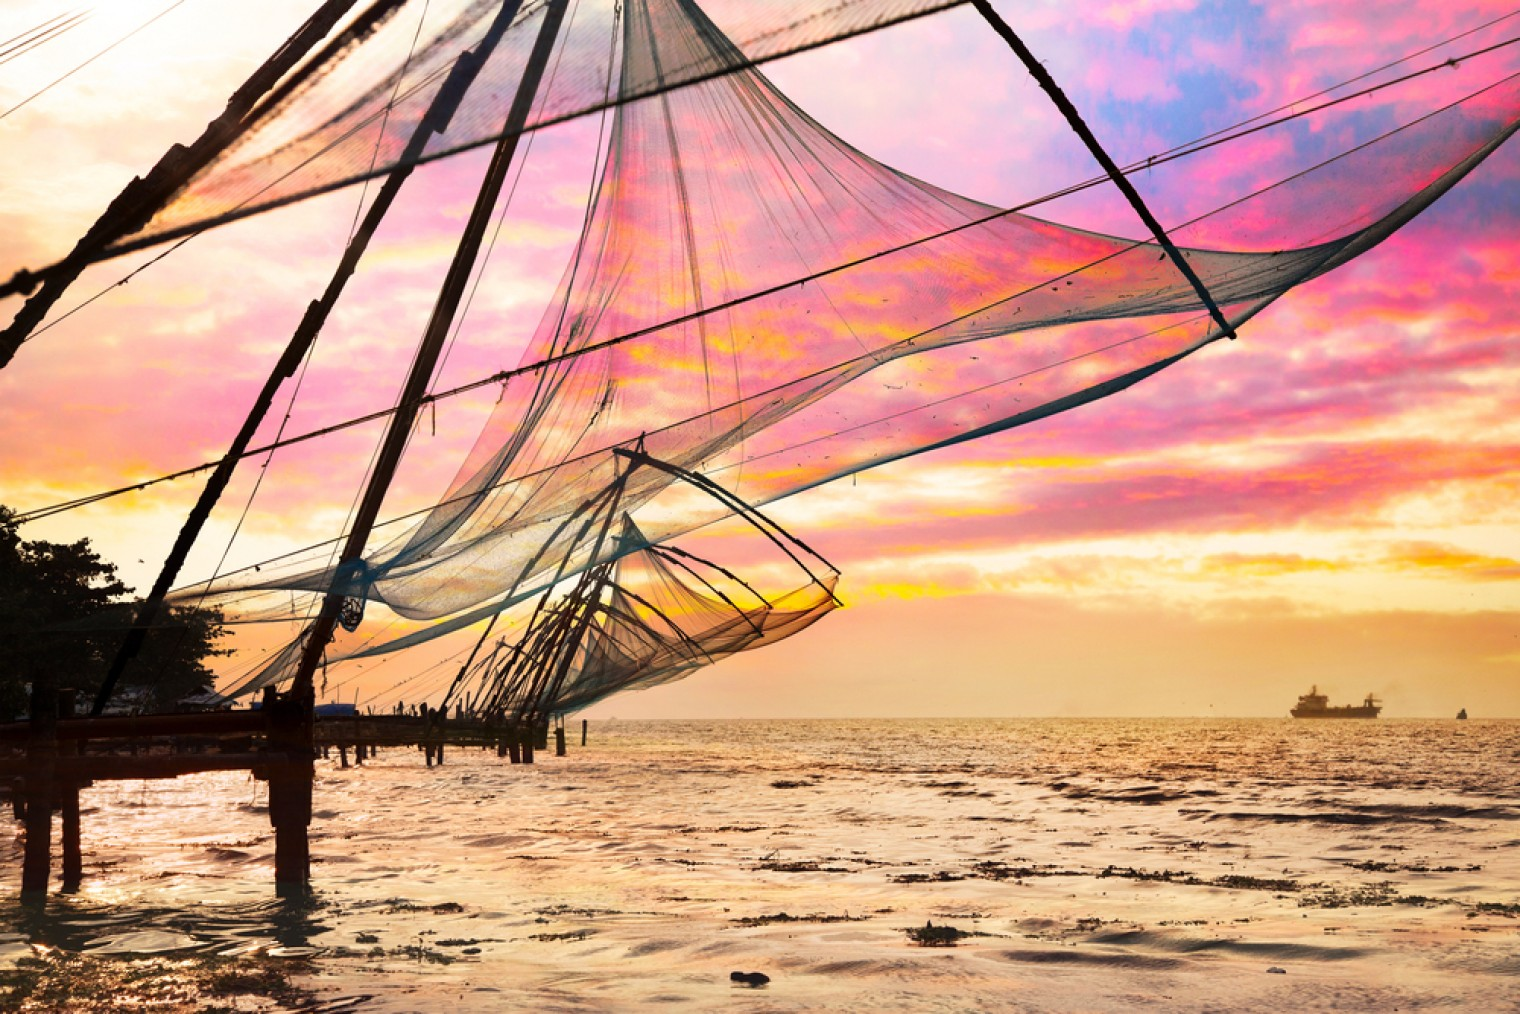 Beaches and backwaters – Kerala's distinctive identity